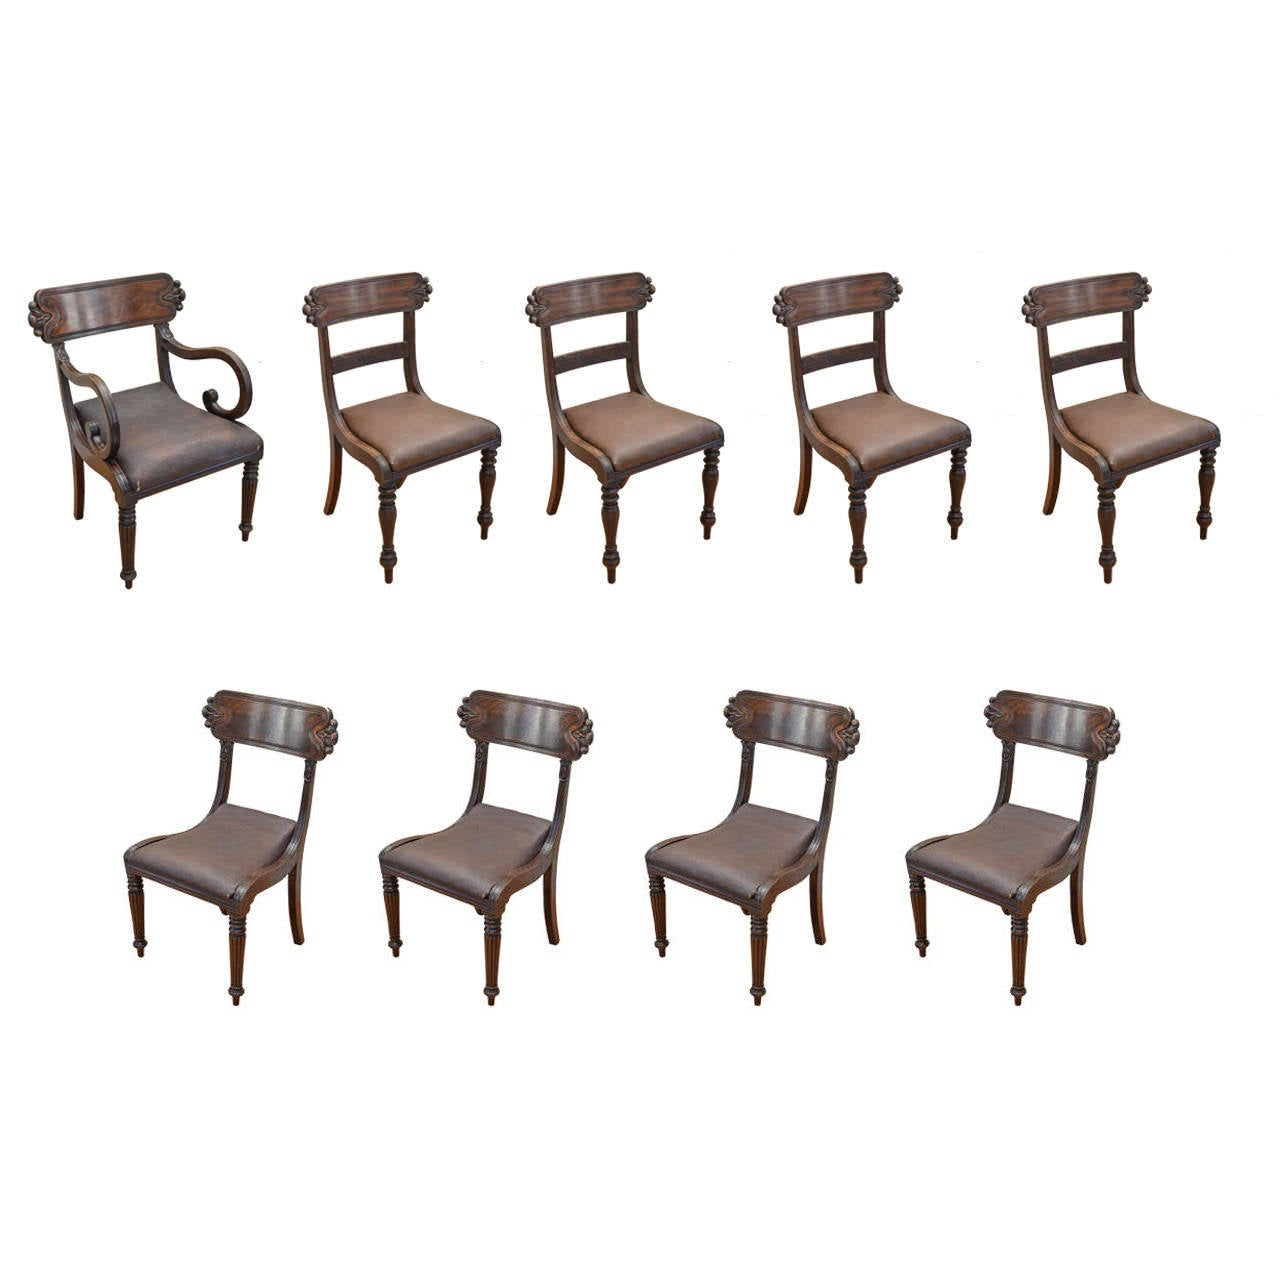 Set of Nine English Mahogany Late Regency Dining Chairs